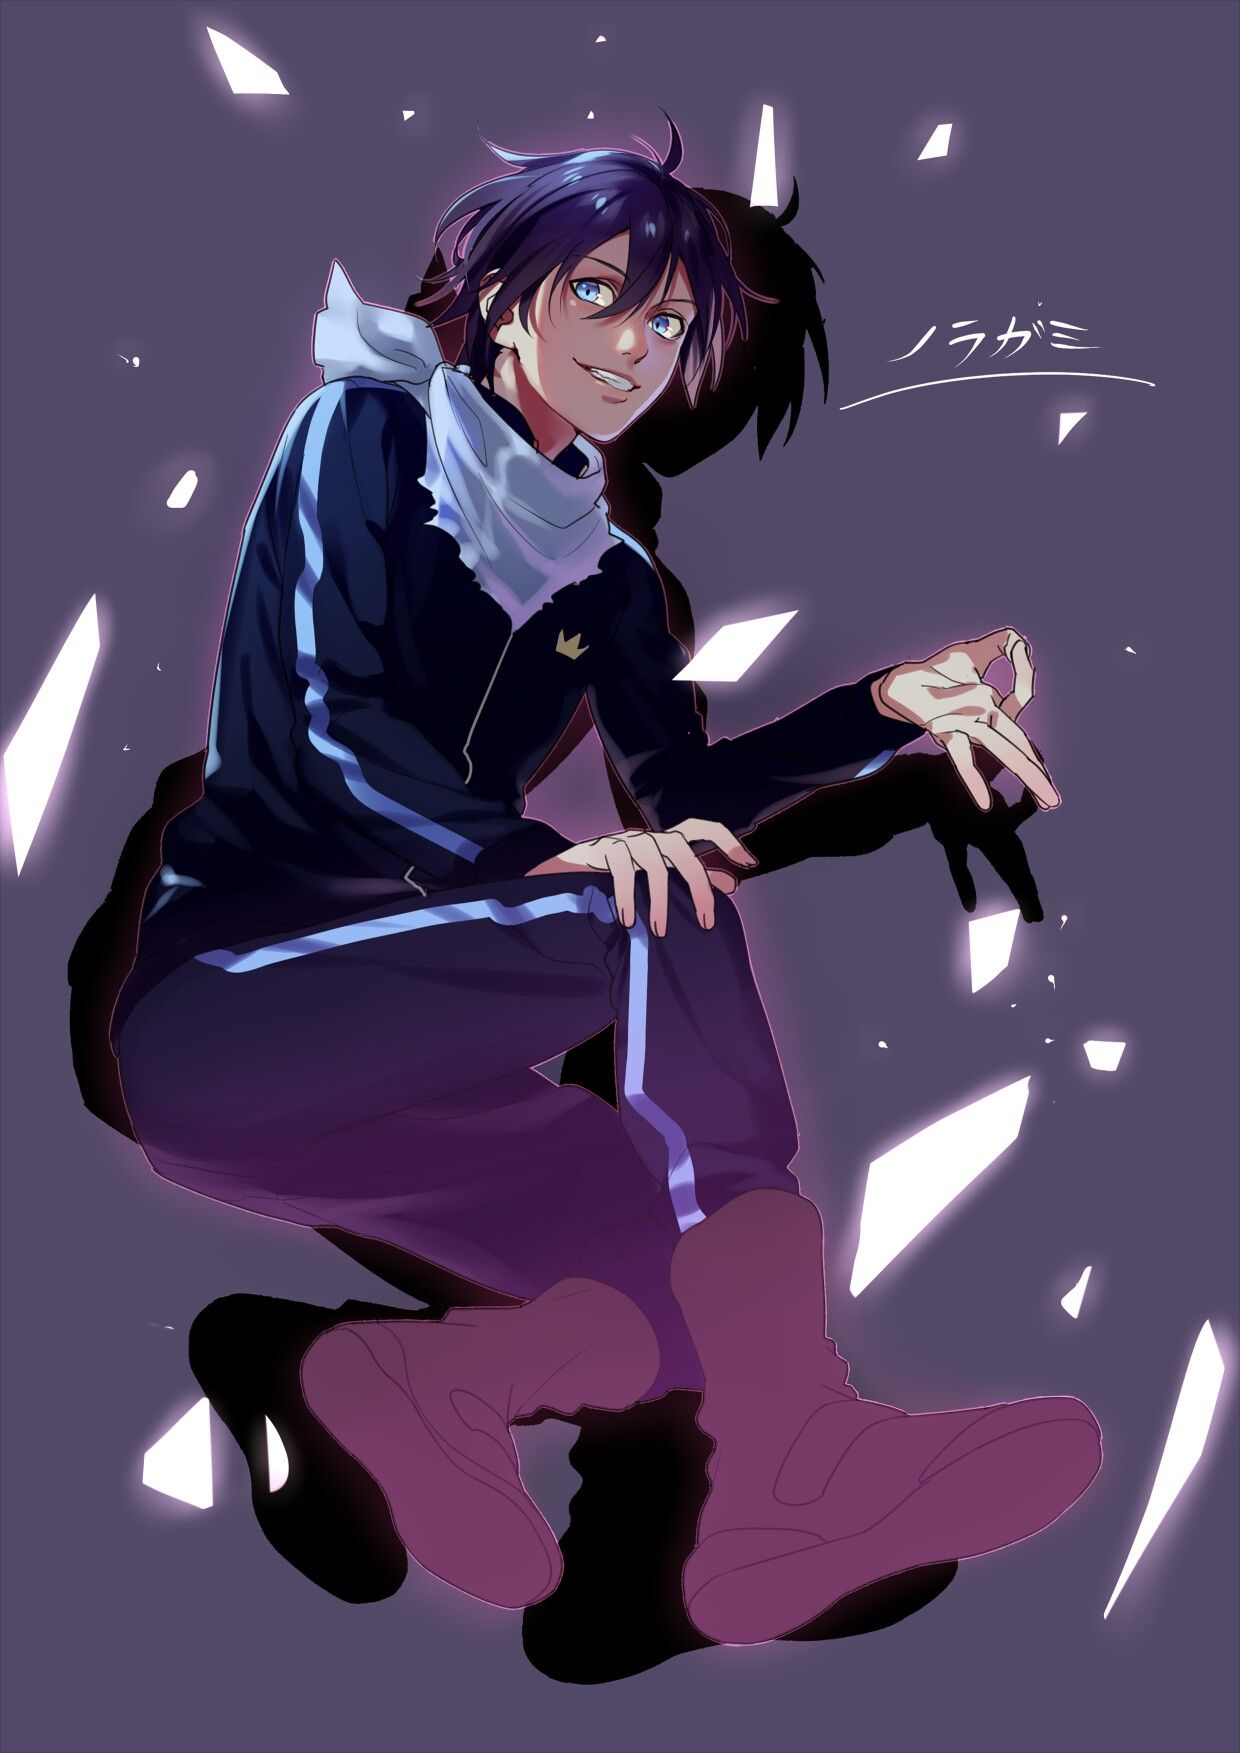 Pin by 🌟IVA🌟 on noragami Yato noragami, Noragami, Anime